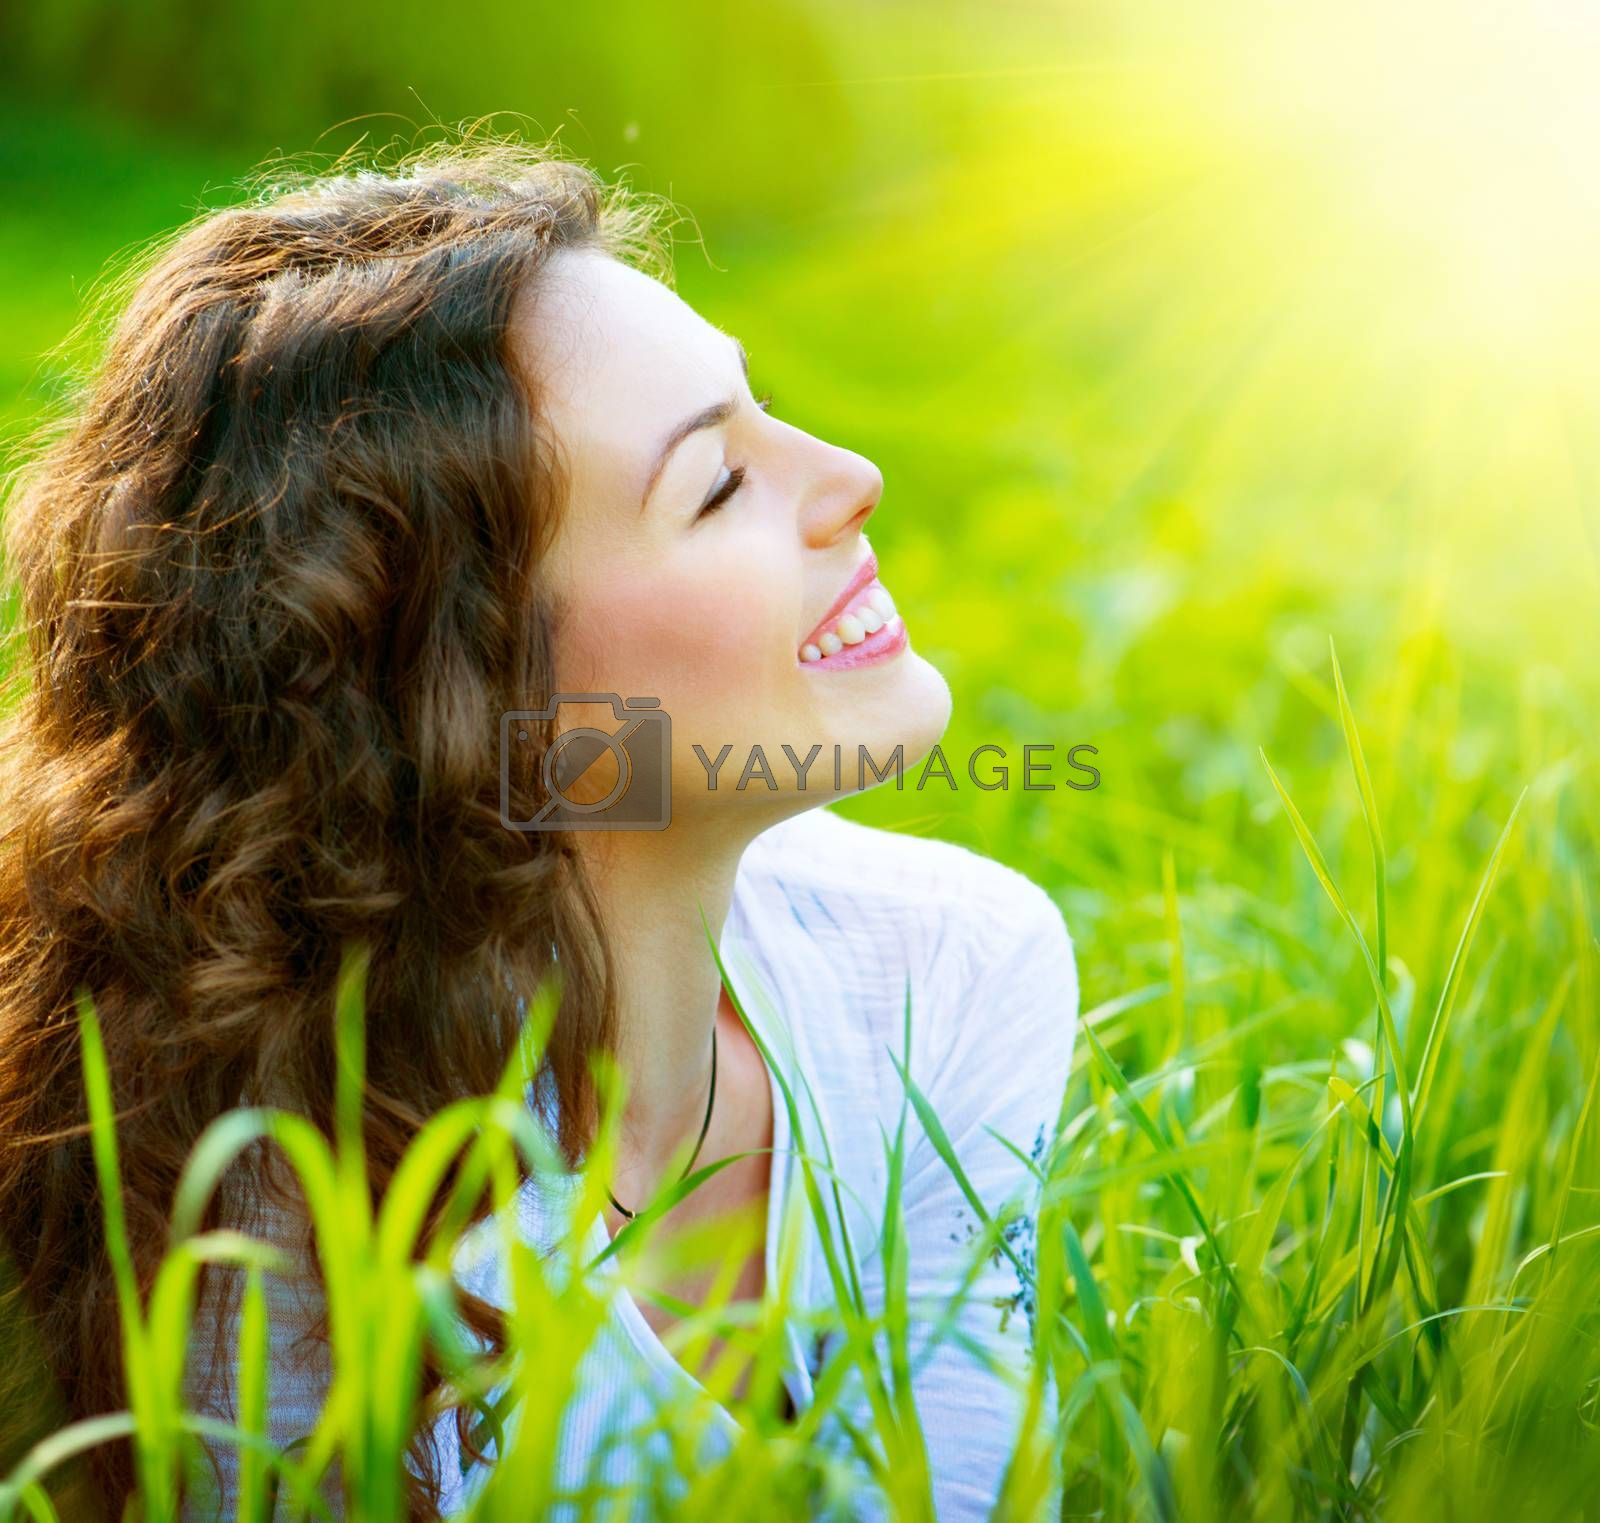 Beautiful Spring Young Woman Outdoors Enjoying Nature by SubbotinaA